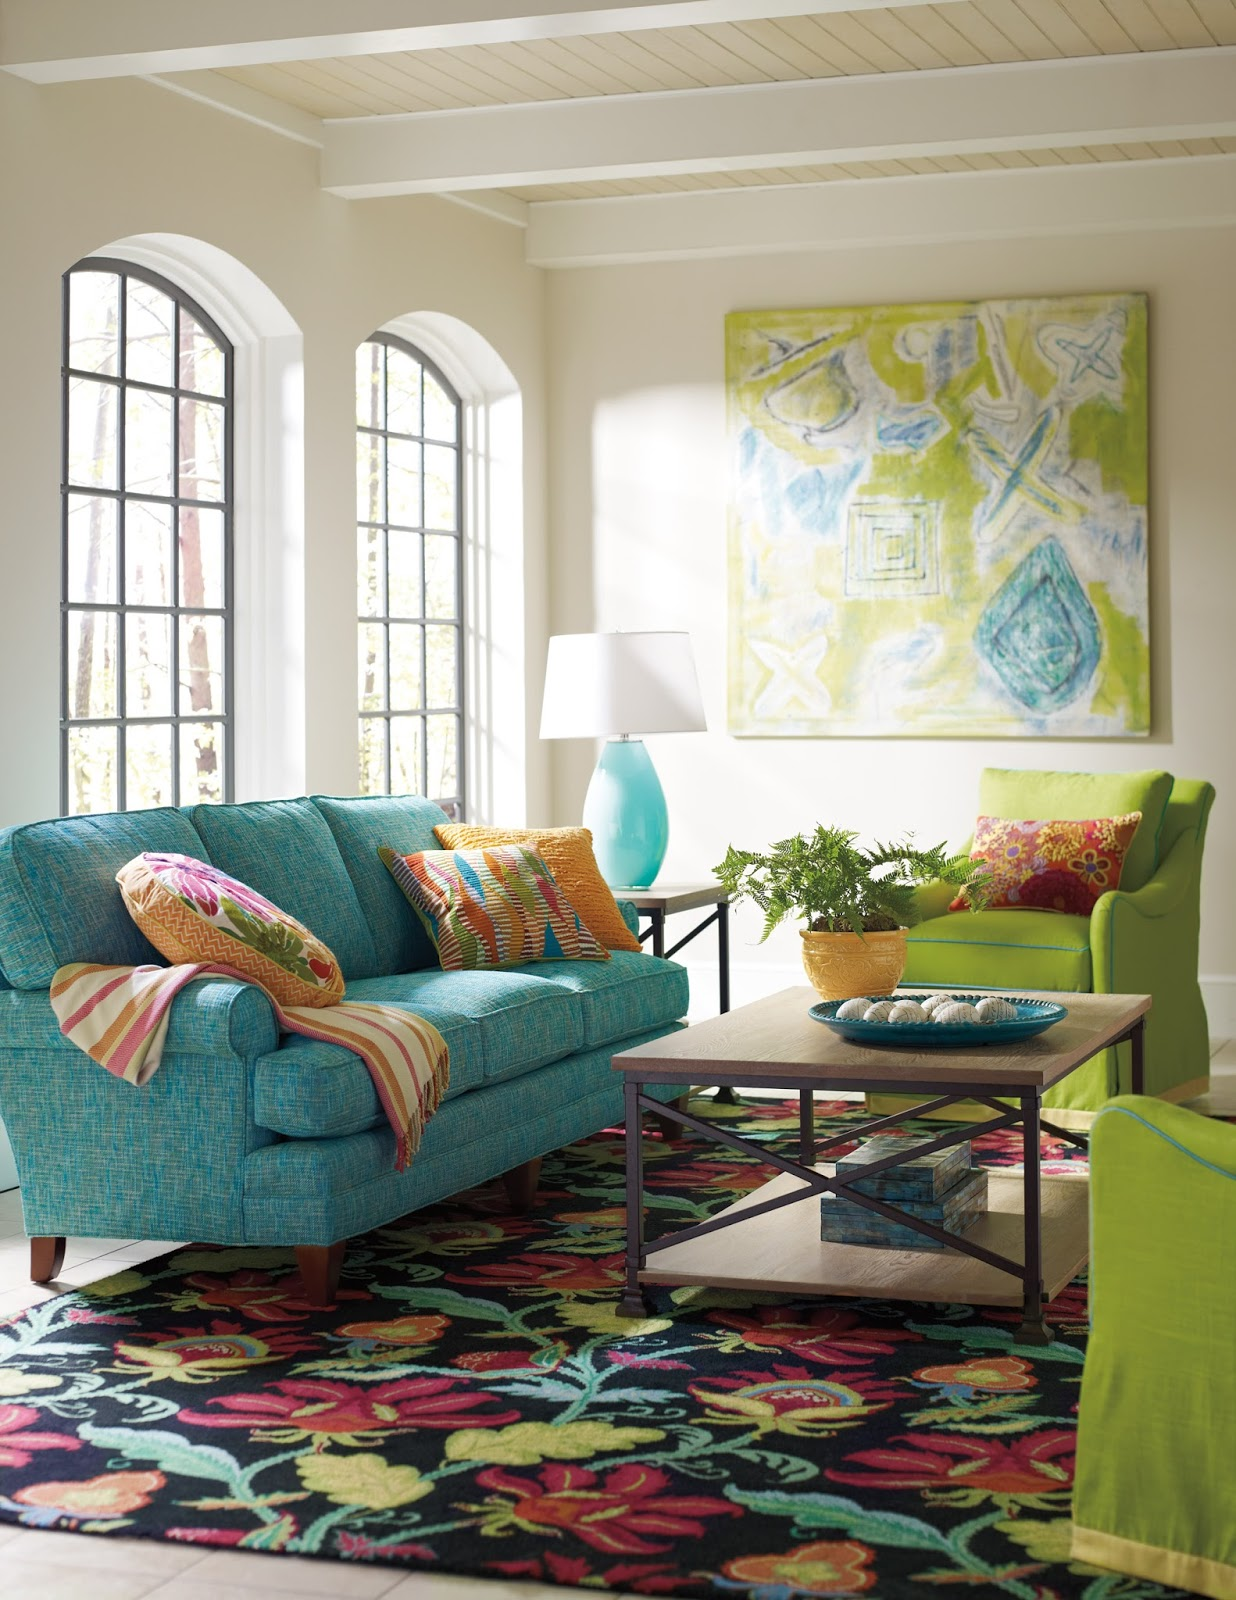 Teal Sofa Living Room Decor: Harmony And Home: URHOUZZ Gorgeous